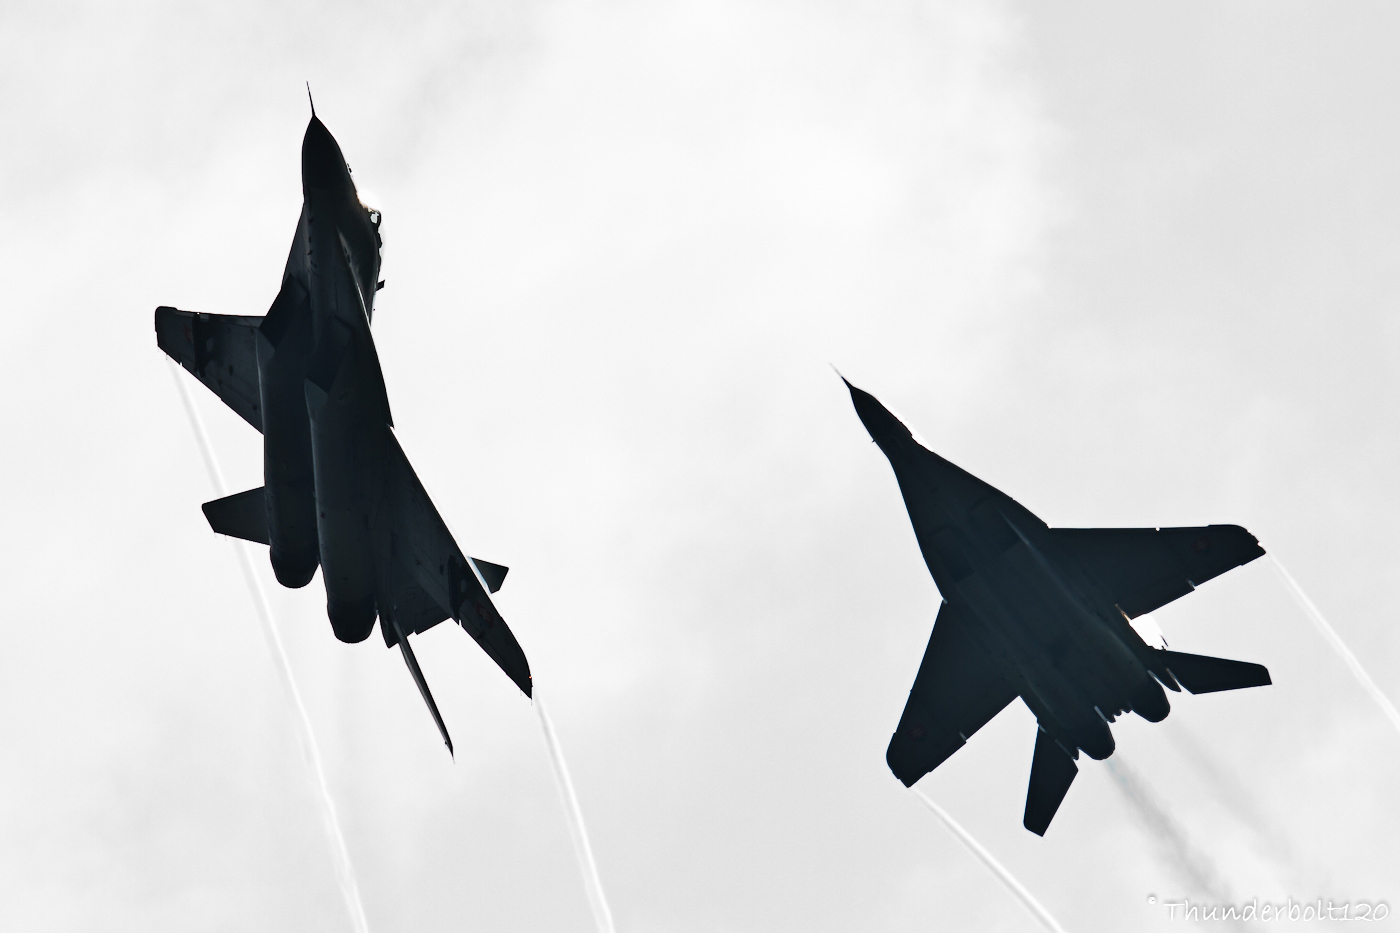 Mig-29AS Dogfight